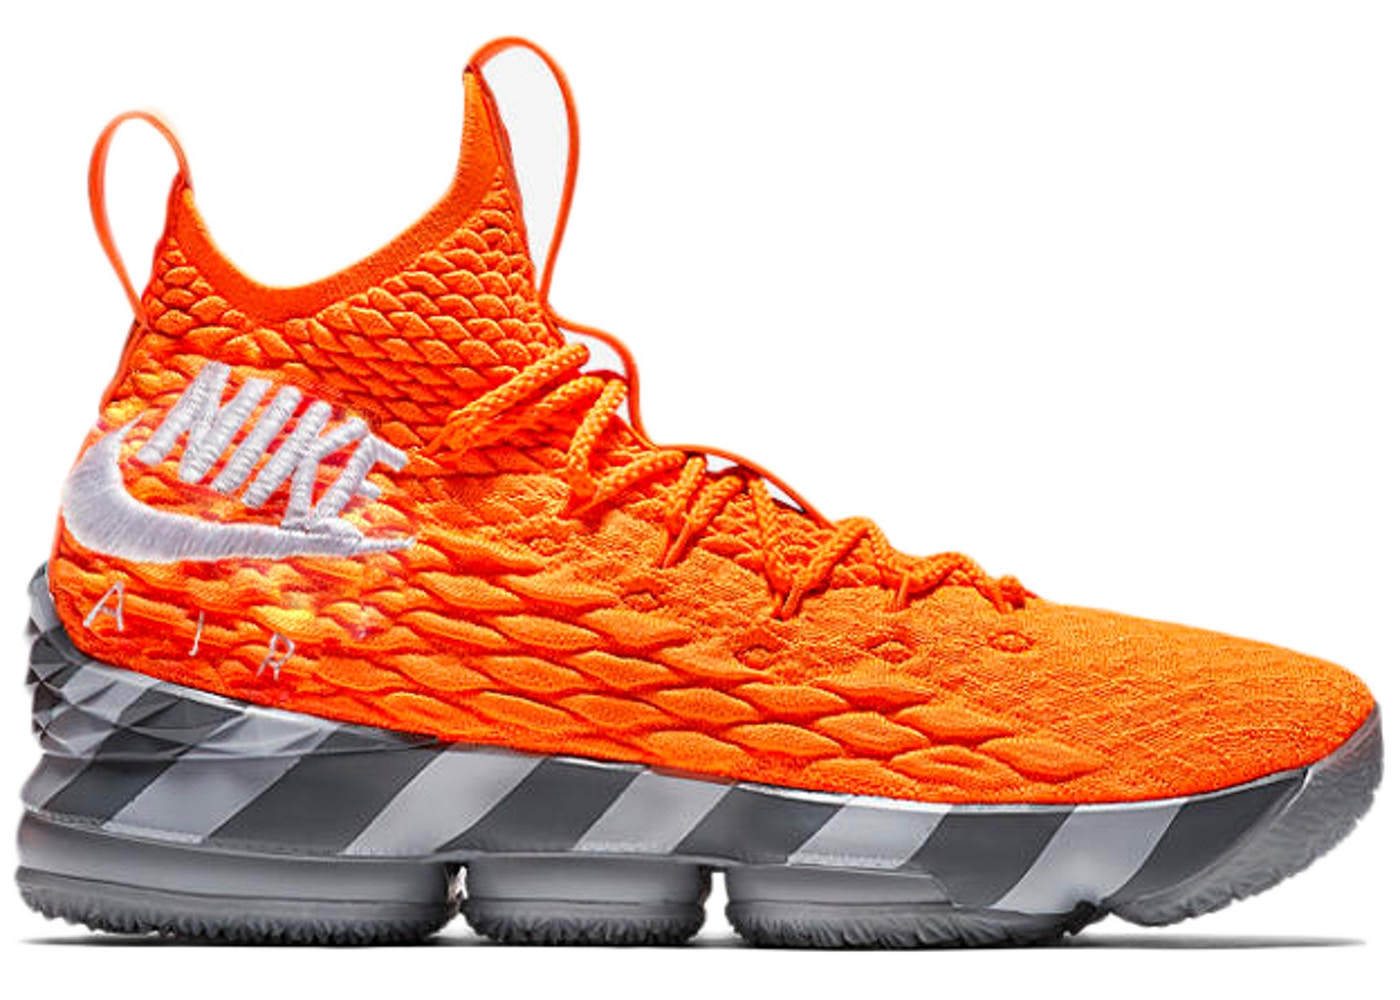 buy popular 50175 d335a LeBron 15 Orange Box - AR5125-800